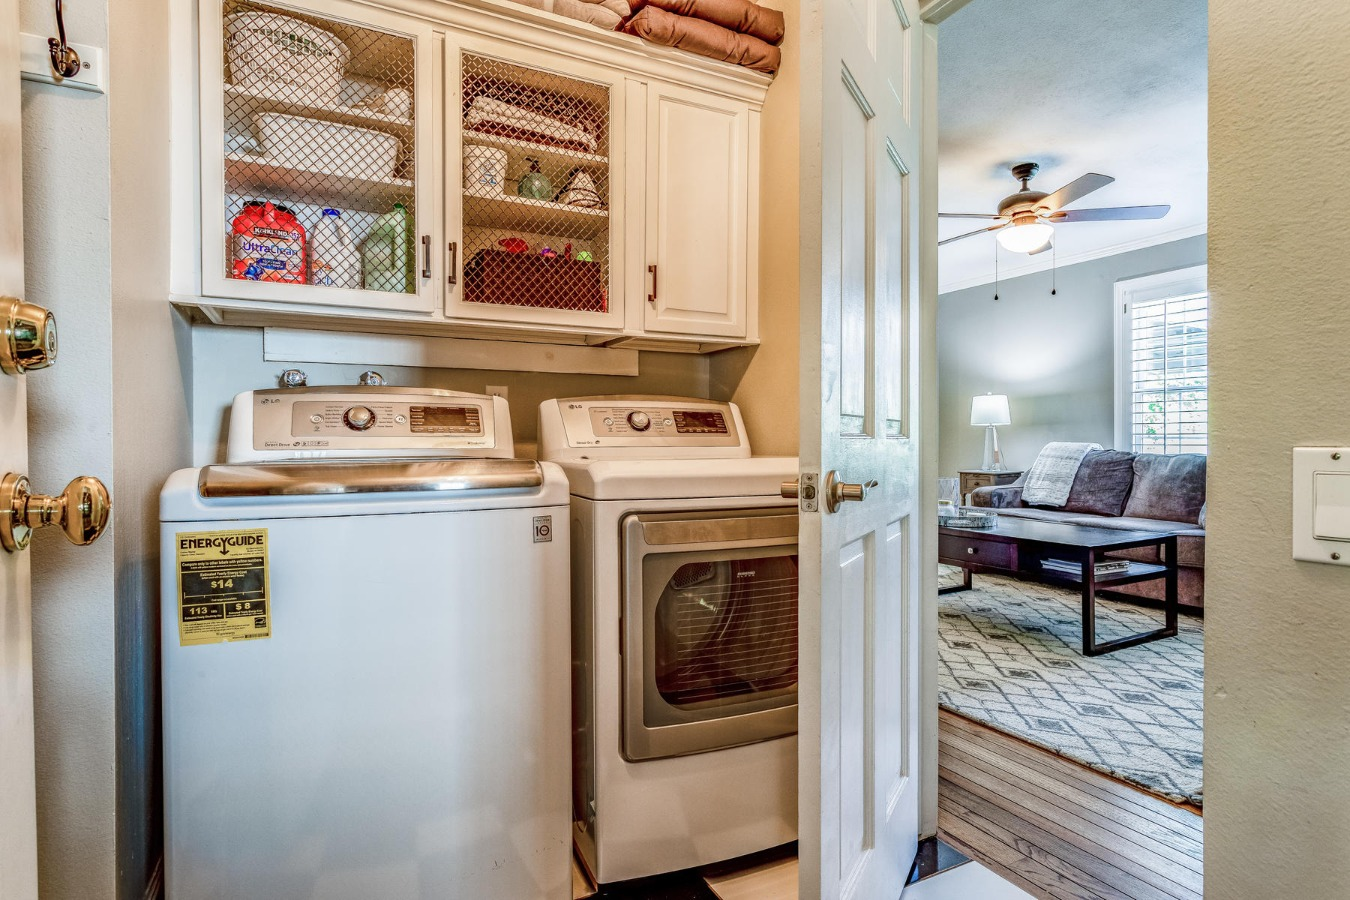 Laundry Room with Built-in Upper Cabinets